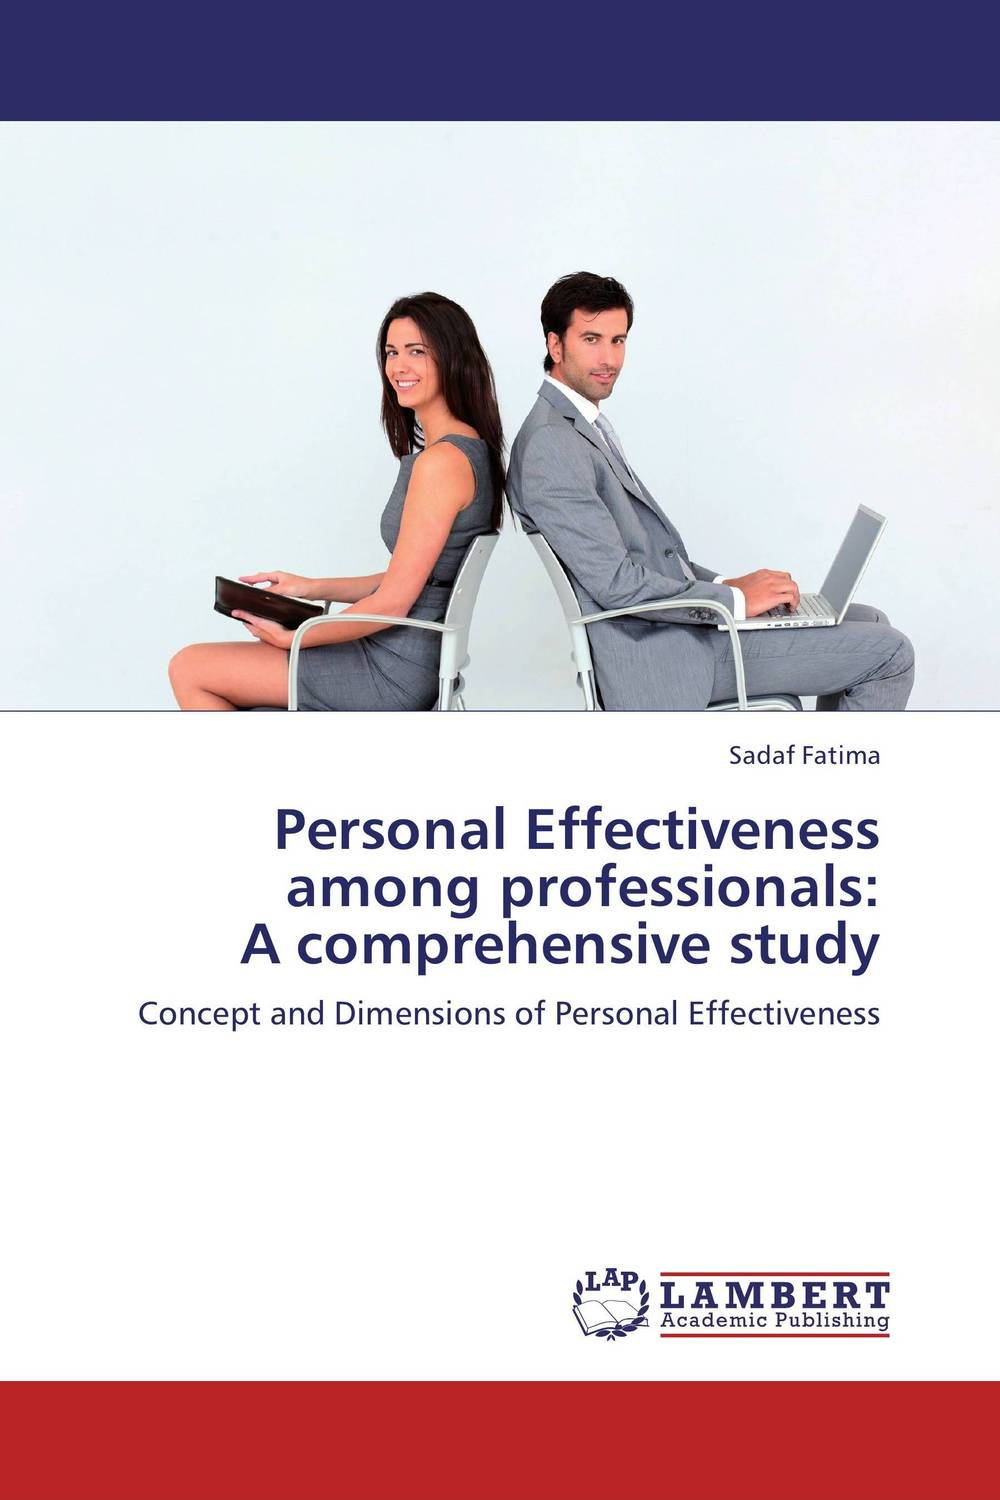 Personal Effectiveness among professionals: A comprehensive study